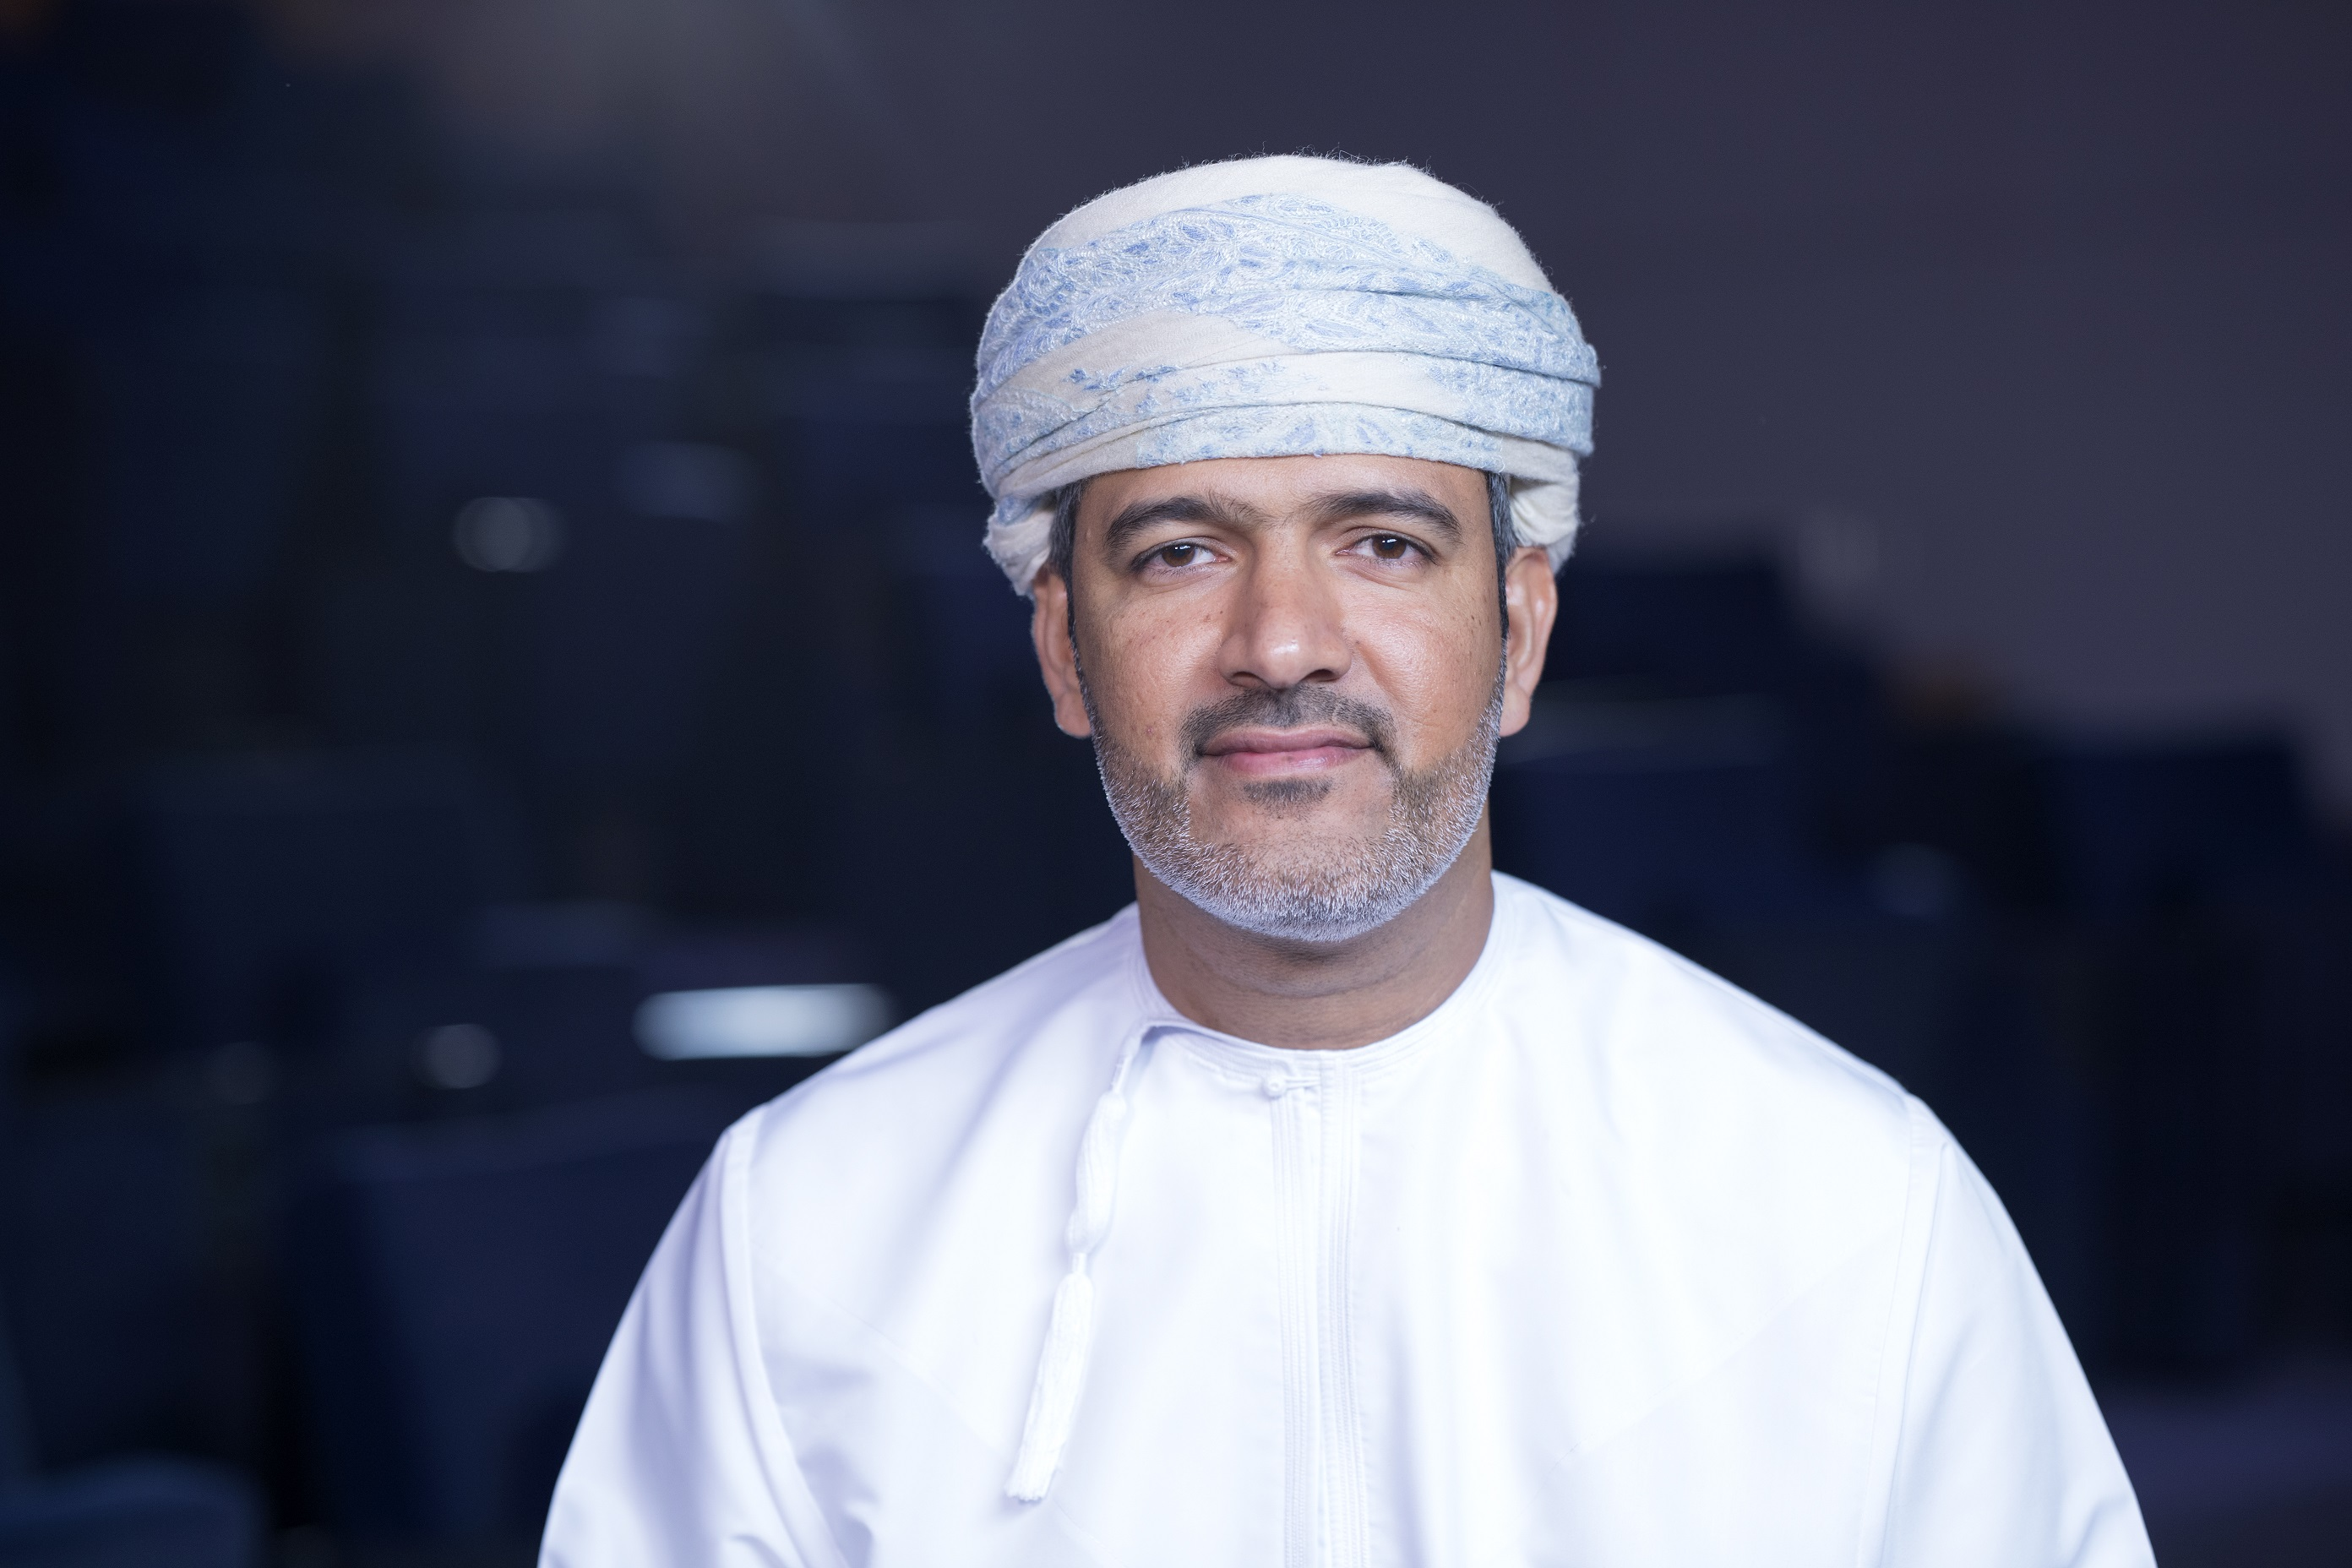 Oman Post CEO highlights role of postal sector in regional summit